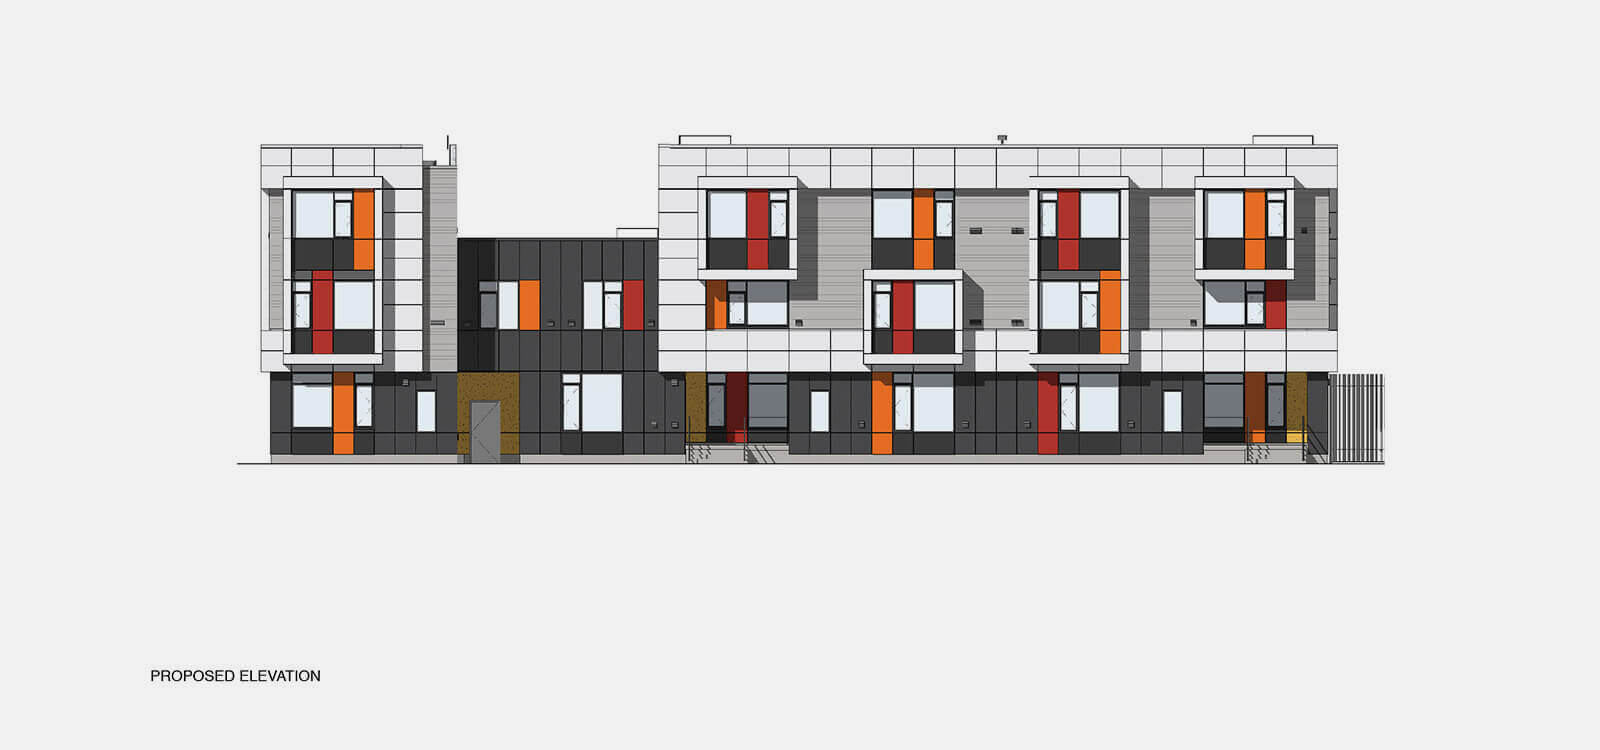 262 Mission Bay Elevation Drawing